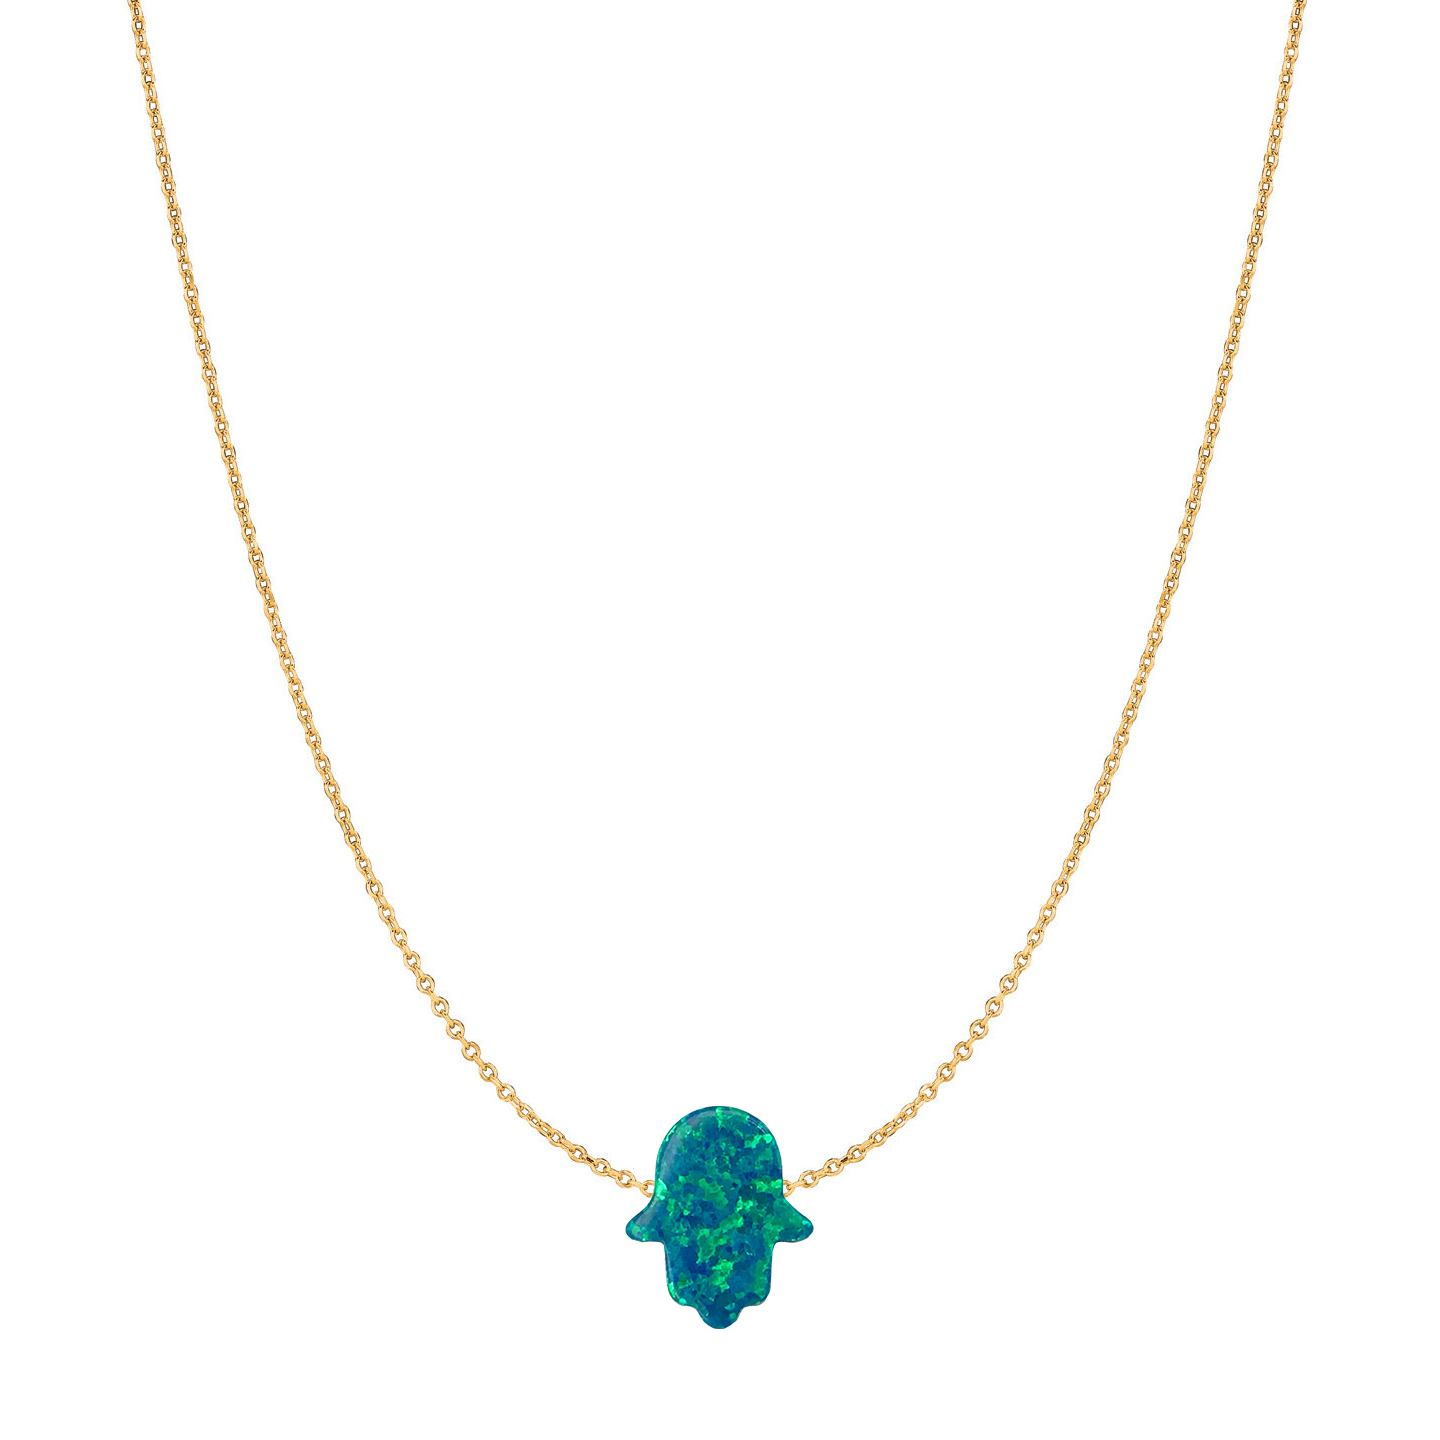 14 Karat Gold Peacock Blue Opal Hamsa Necklace